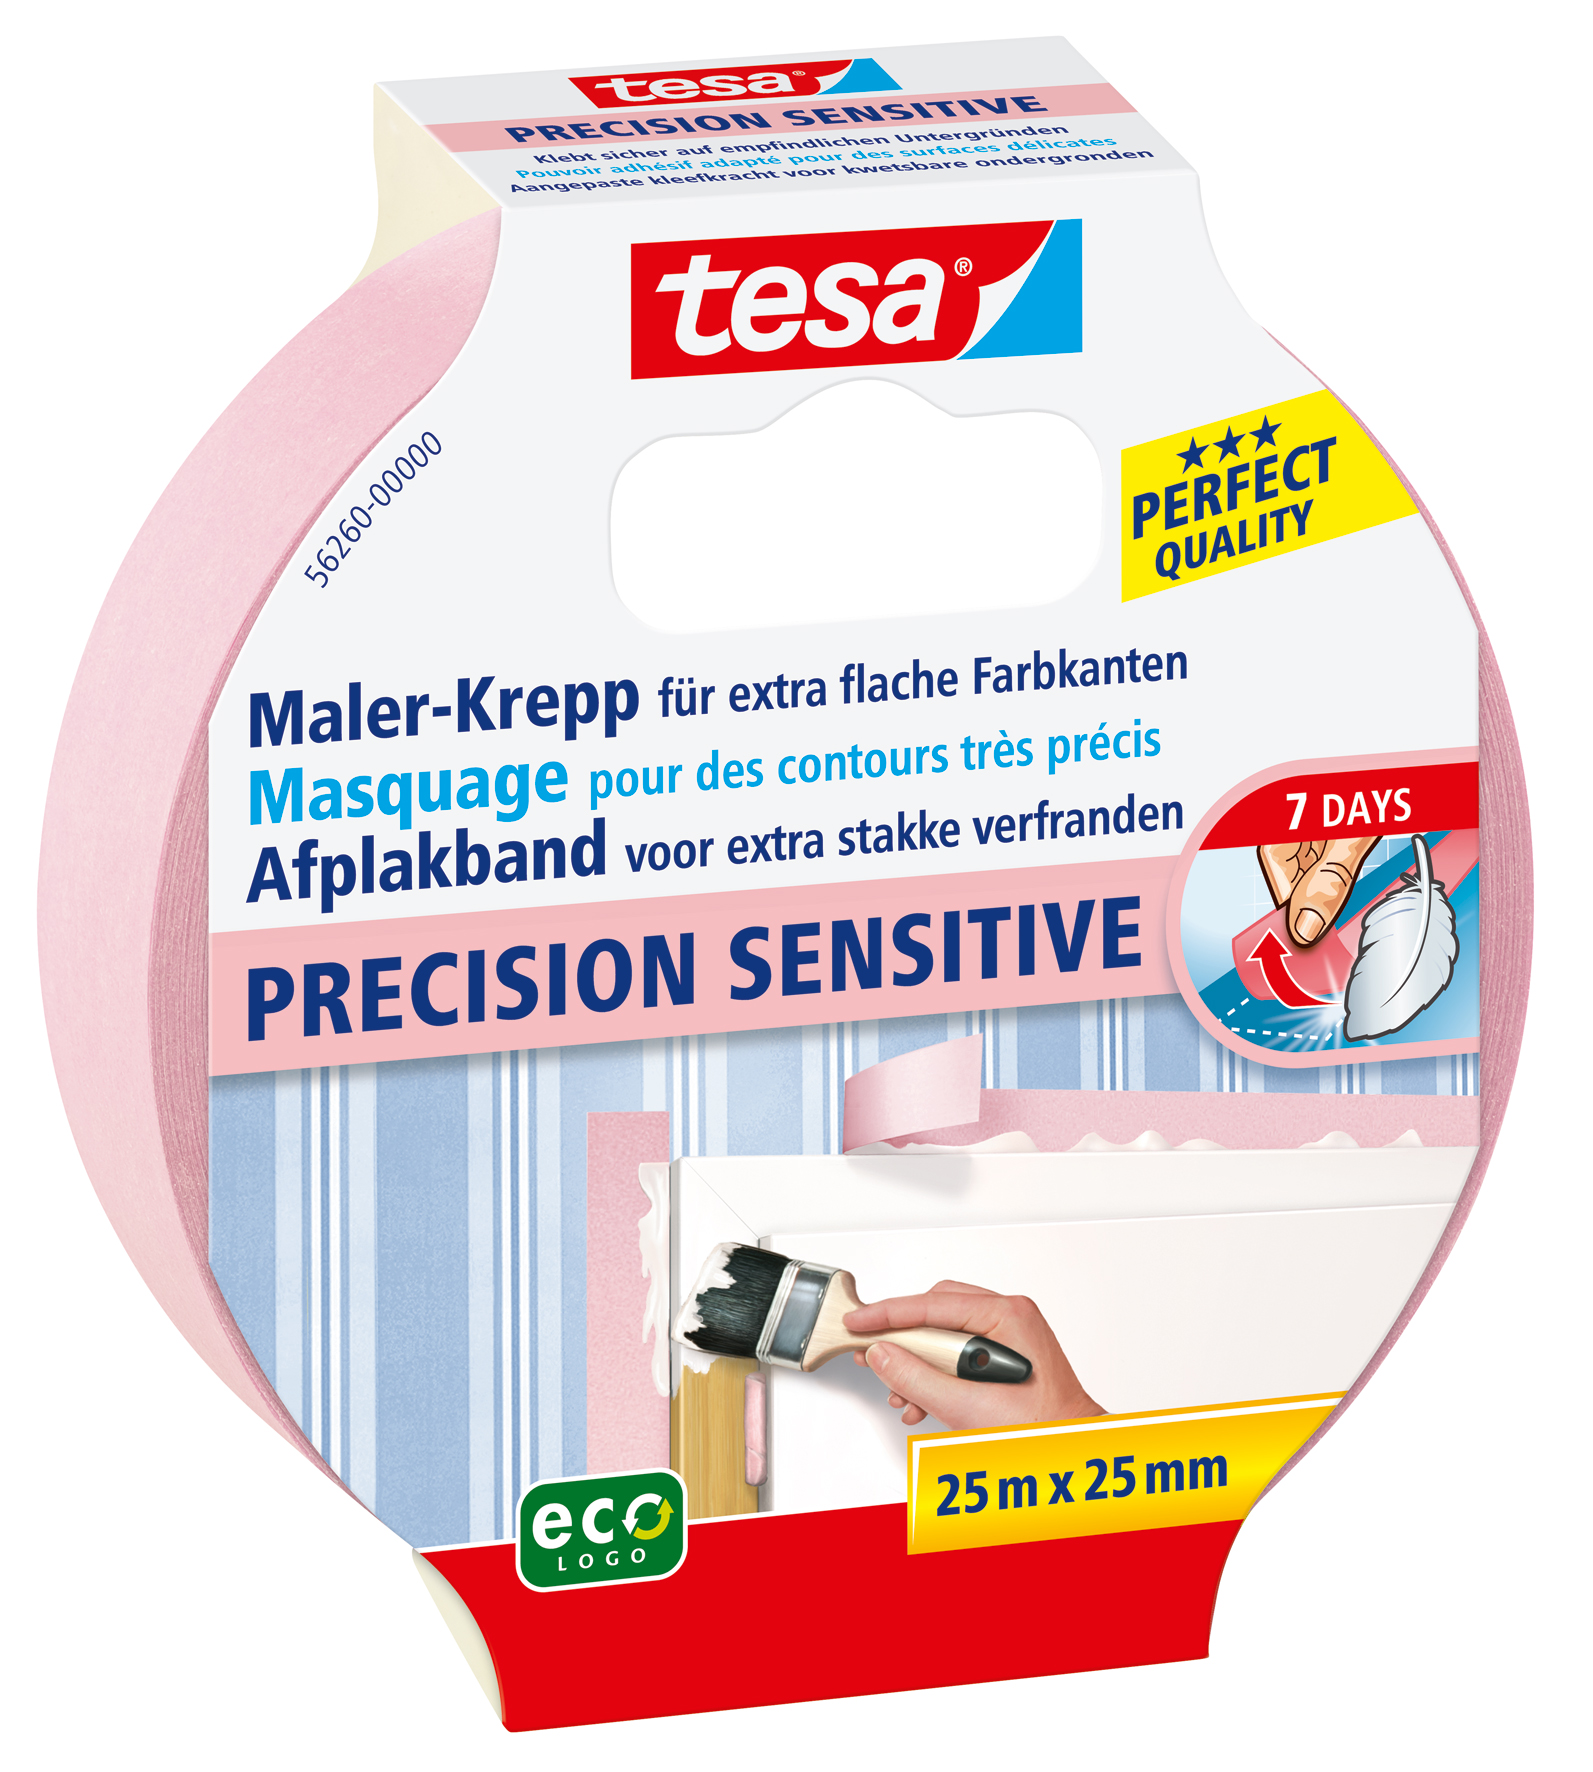 Vorschau: GP: 0,12 EUR/m 6 x tesa Maler-Krepp Precision Sensitive 25 m x 25 mm